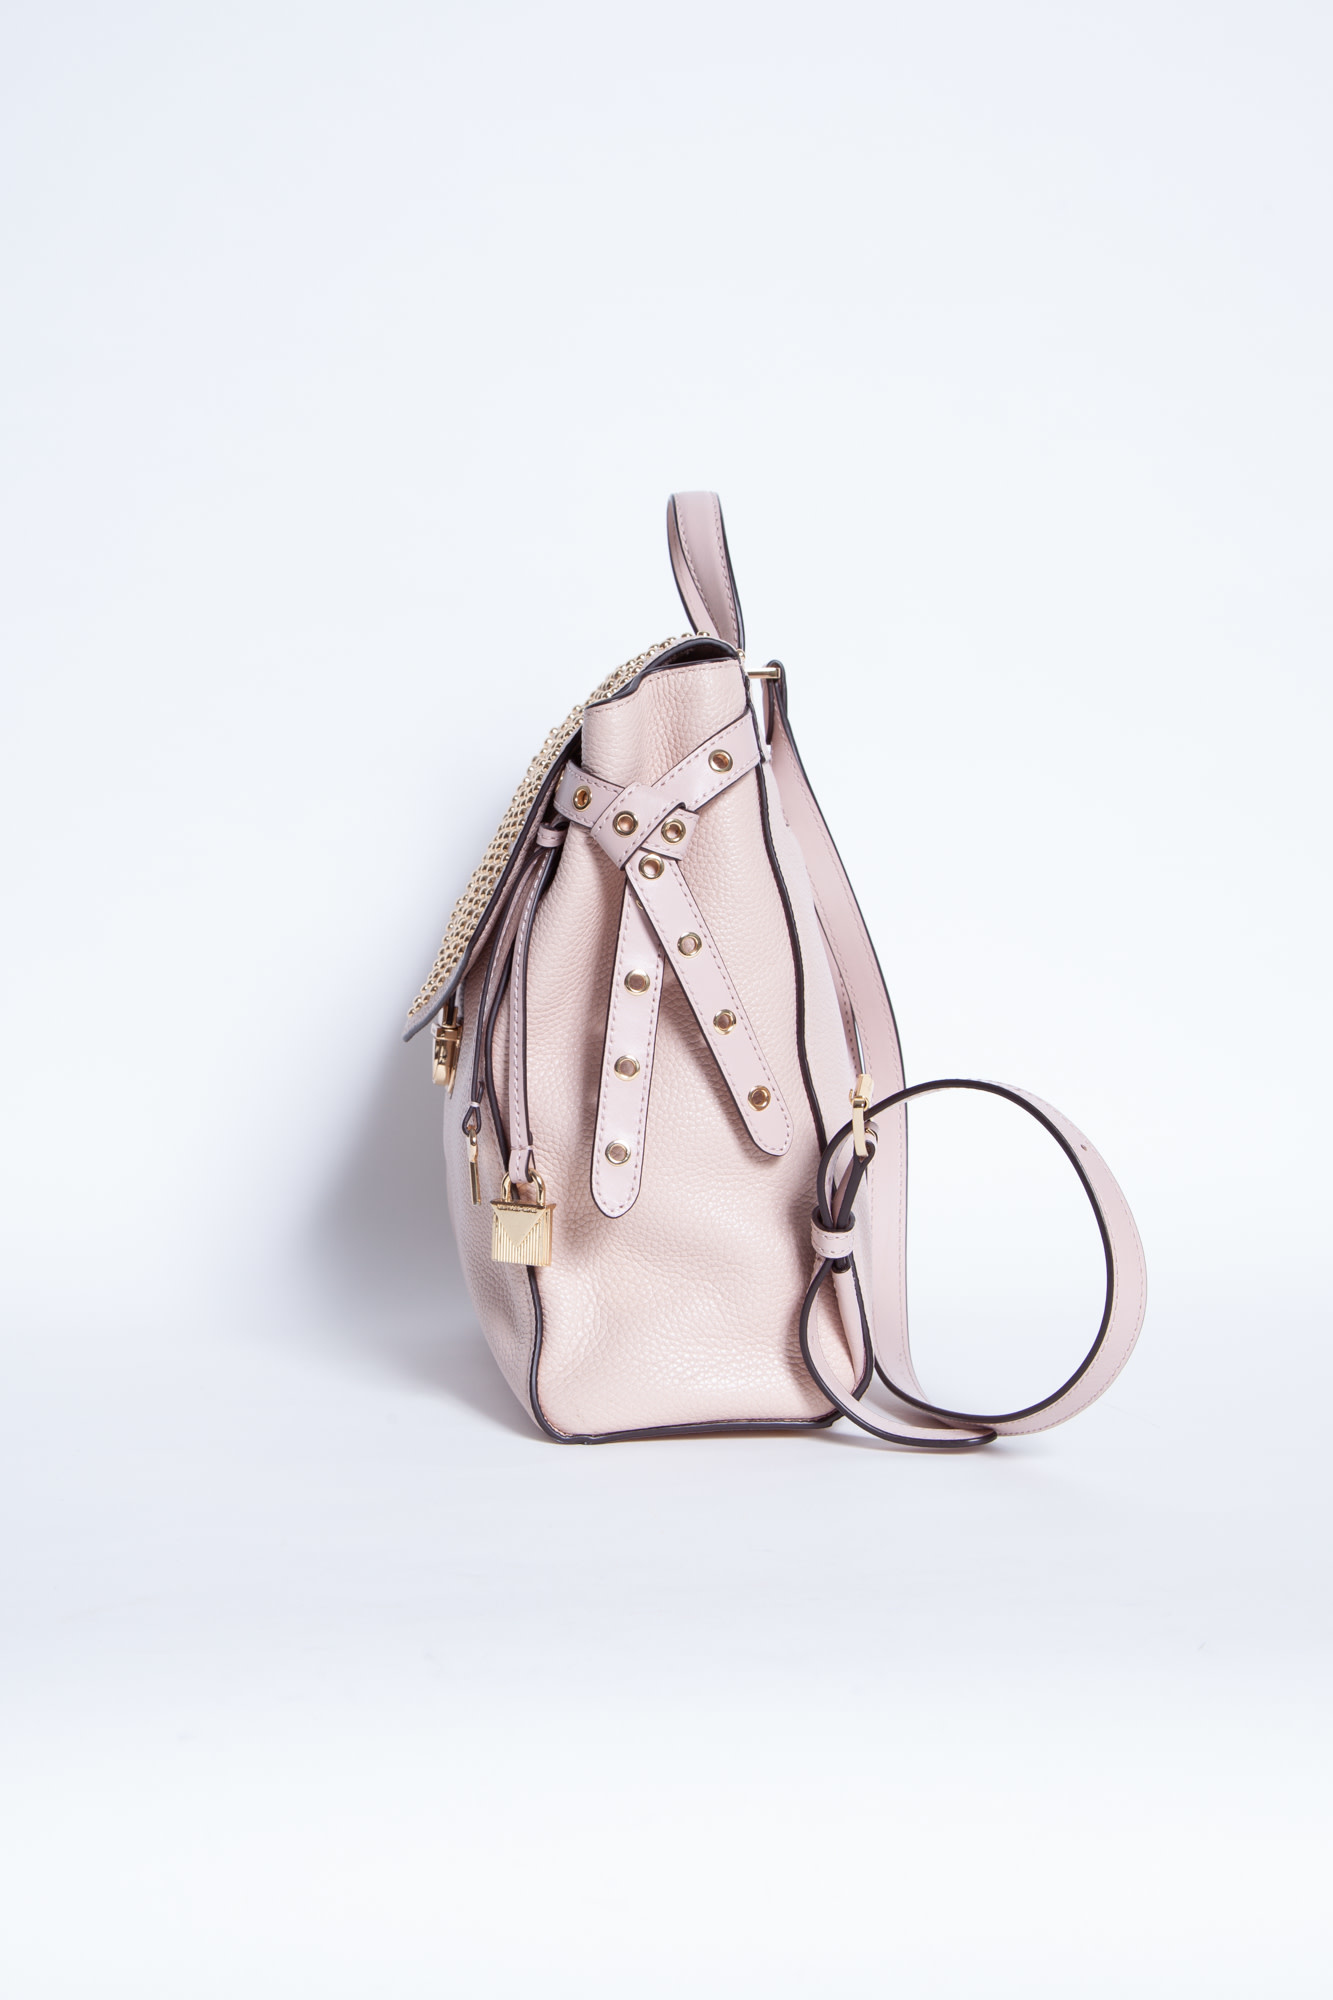 Michael Kors PINK SQUARE BACKPACK WITH GOLD STUDS